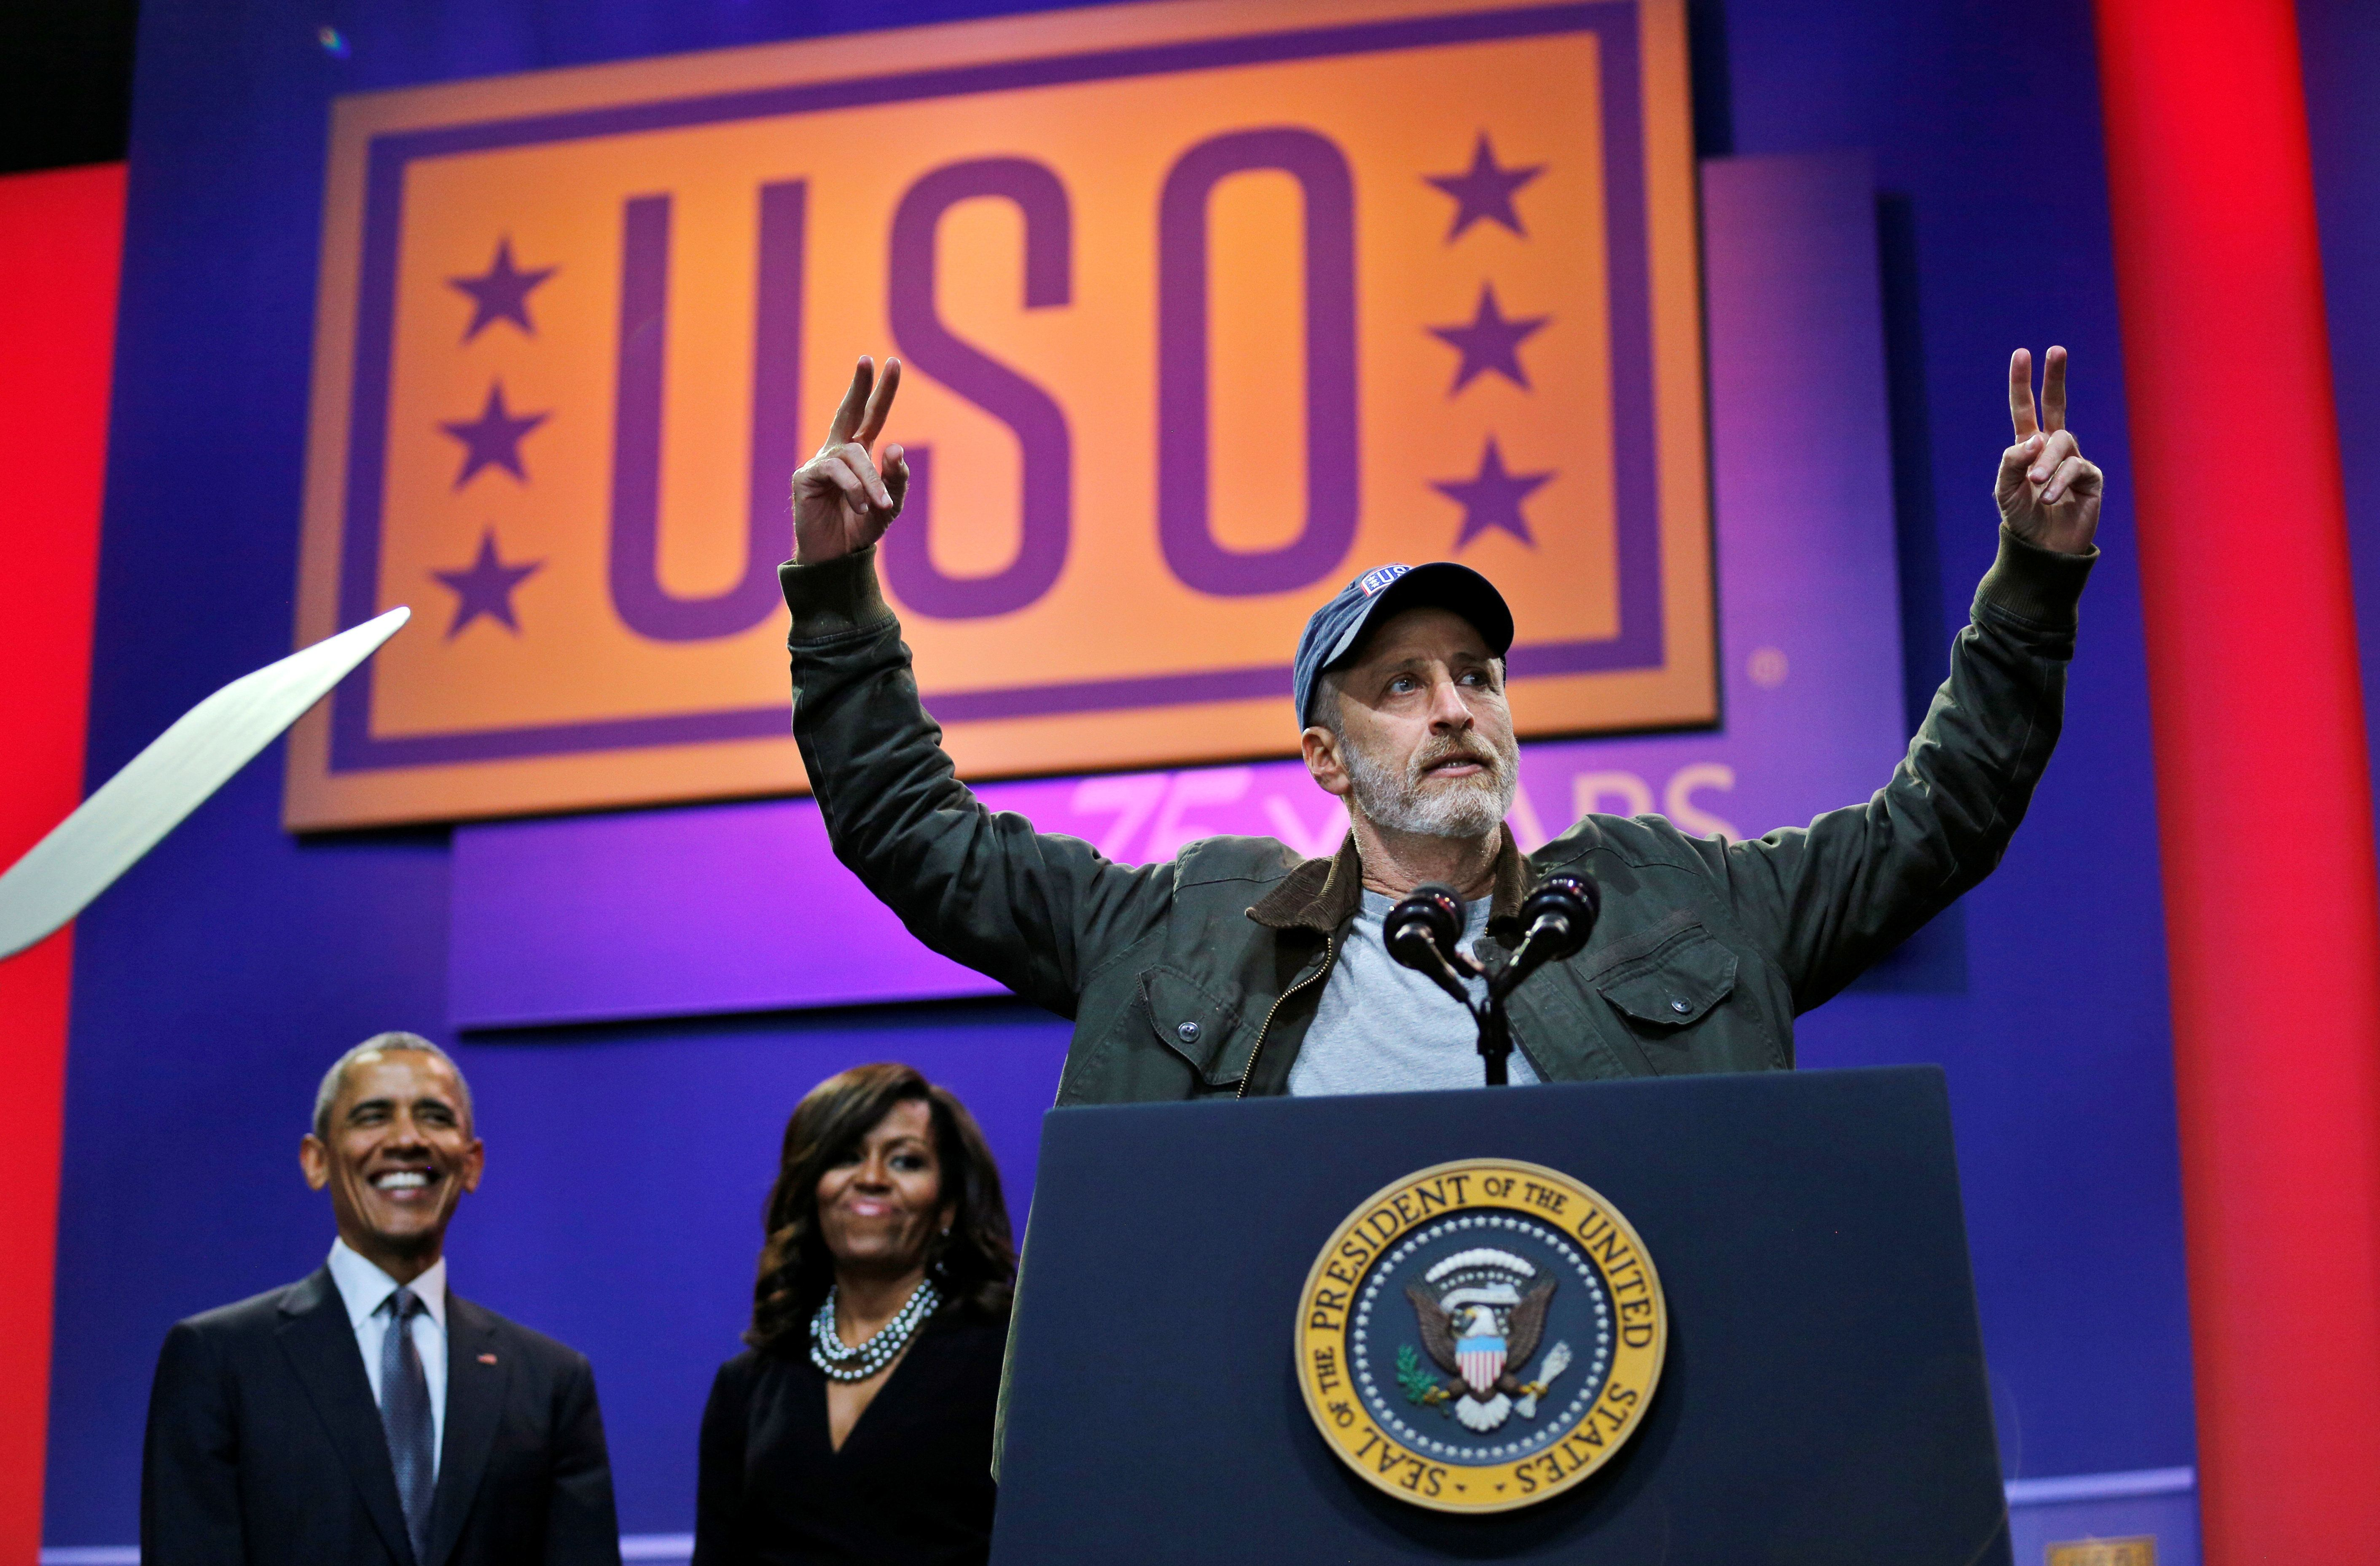 Comedian Jon Stewart attends a comedy show celebrating Military Appreciation Month as well as the 5th anniversary of Joining Forces and the 75th anniversary of the USO, accompanied by U.S. President Barack Obama and first lady Michelle Obama at Joint Base Andrews in Clinton, Maryland, U.S. May 5, 2016. REUTERS/Carlos Barria